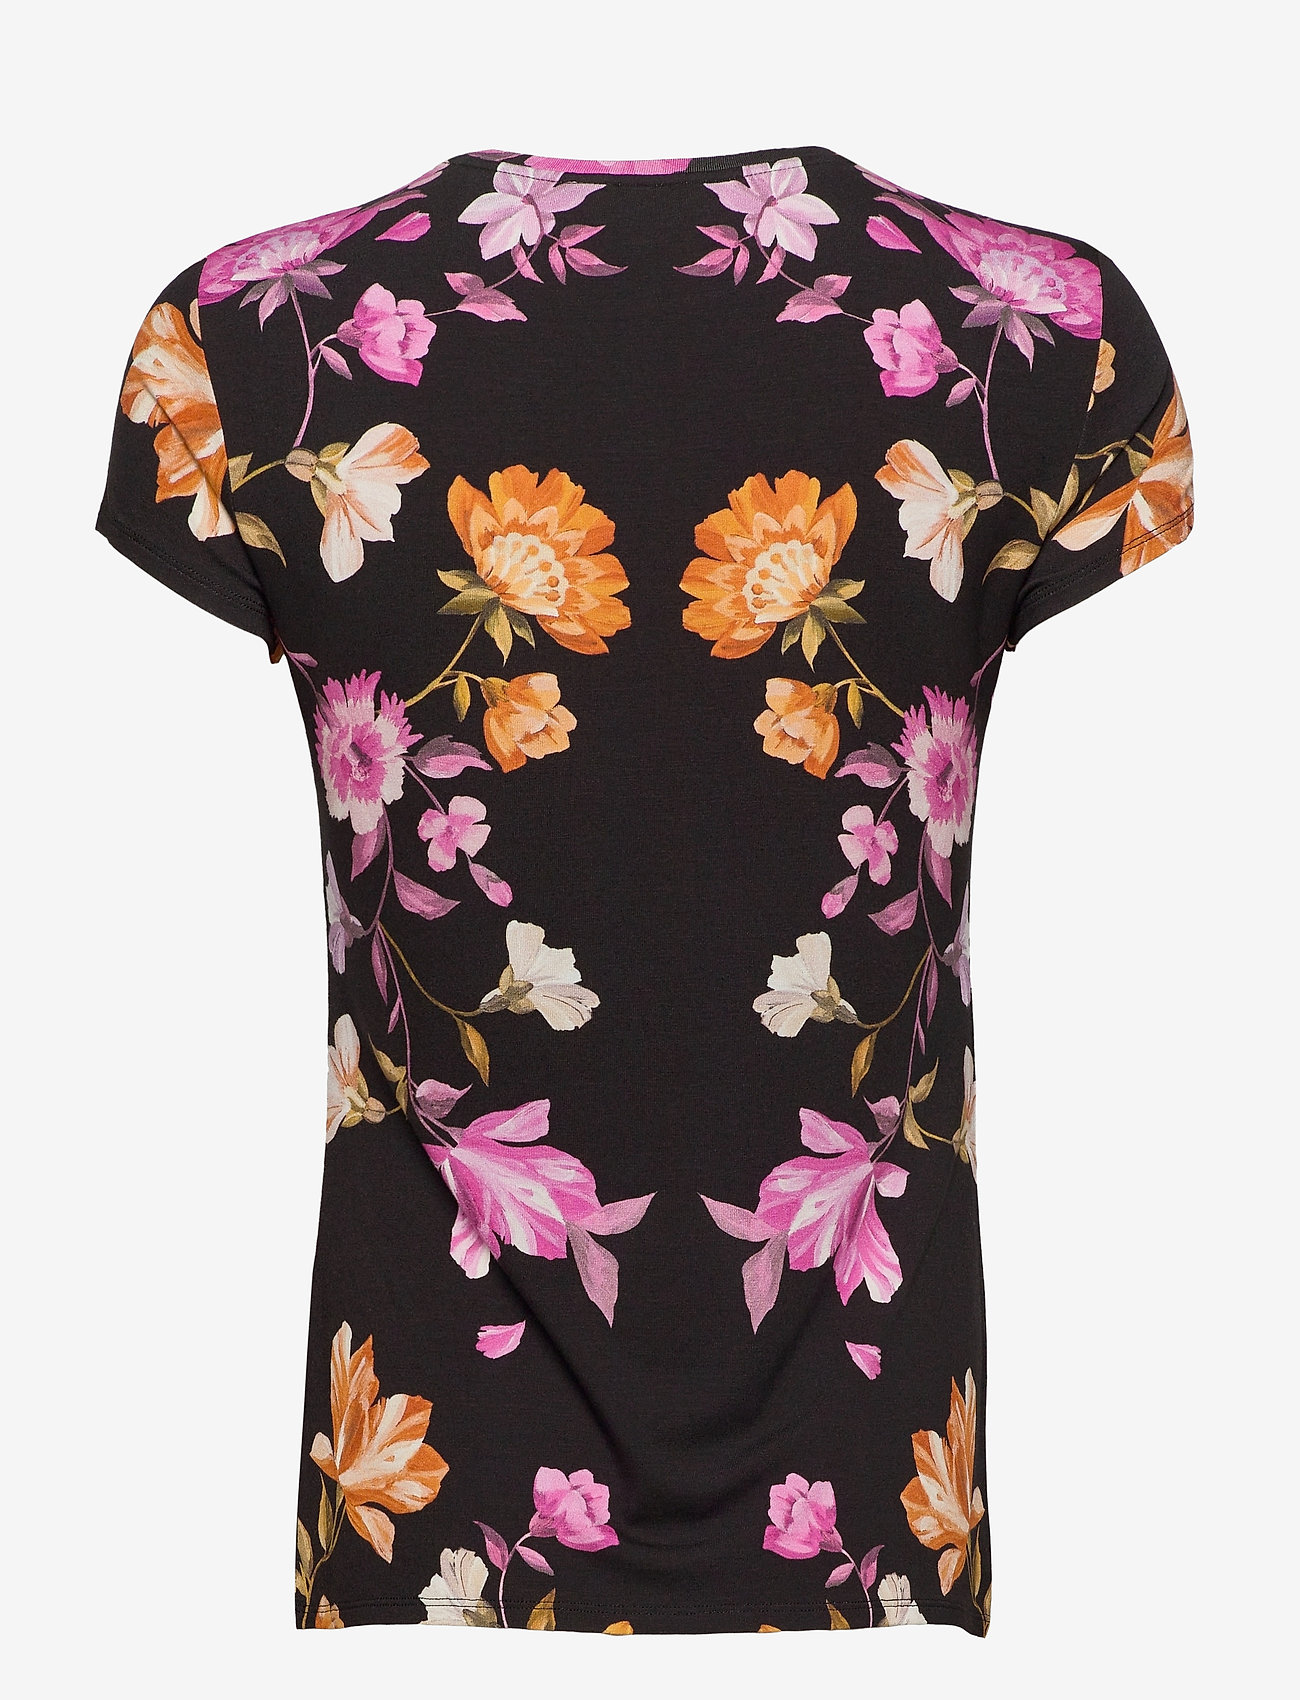 Arbyela   - Ted Baker -  Women's T-shirts & Tops Top-Rated